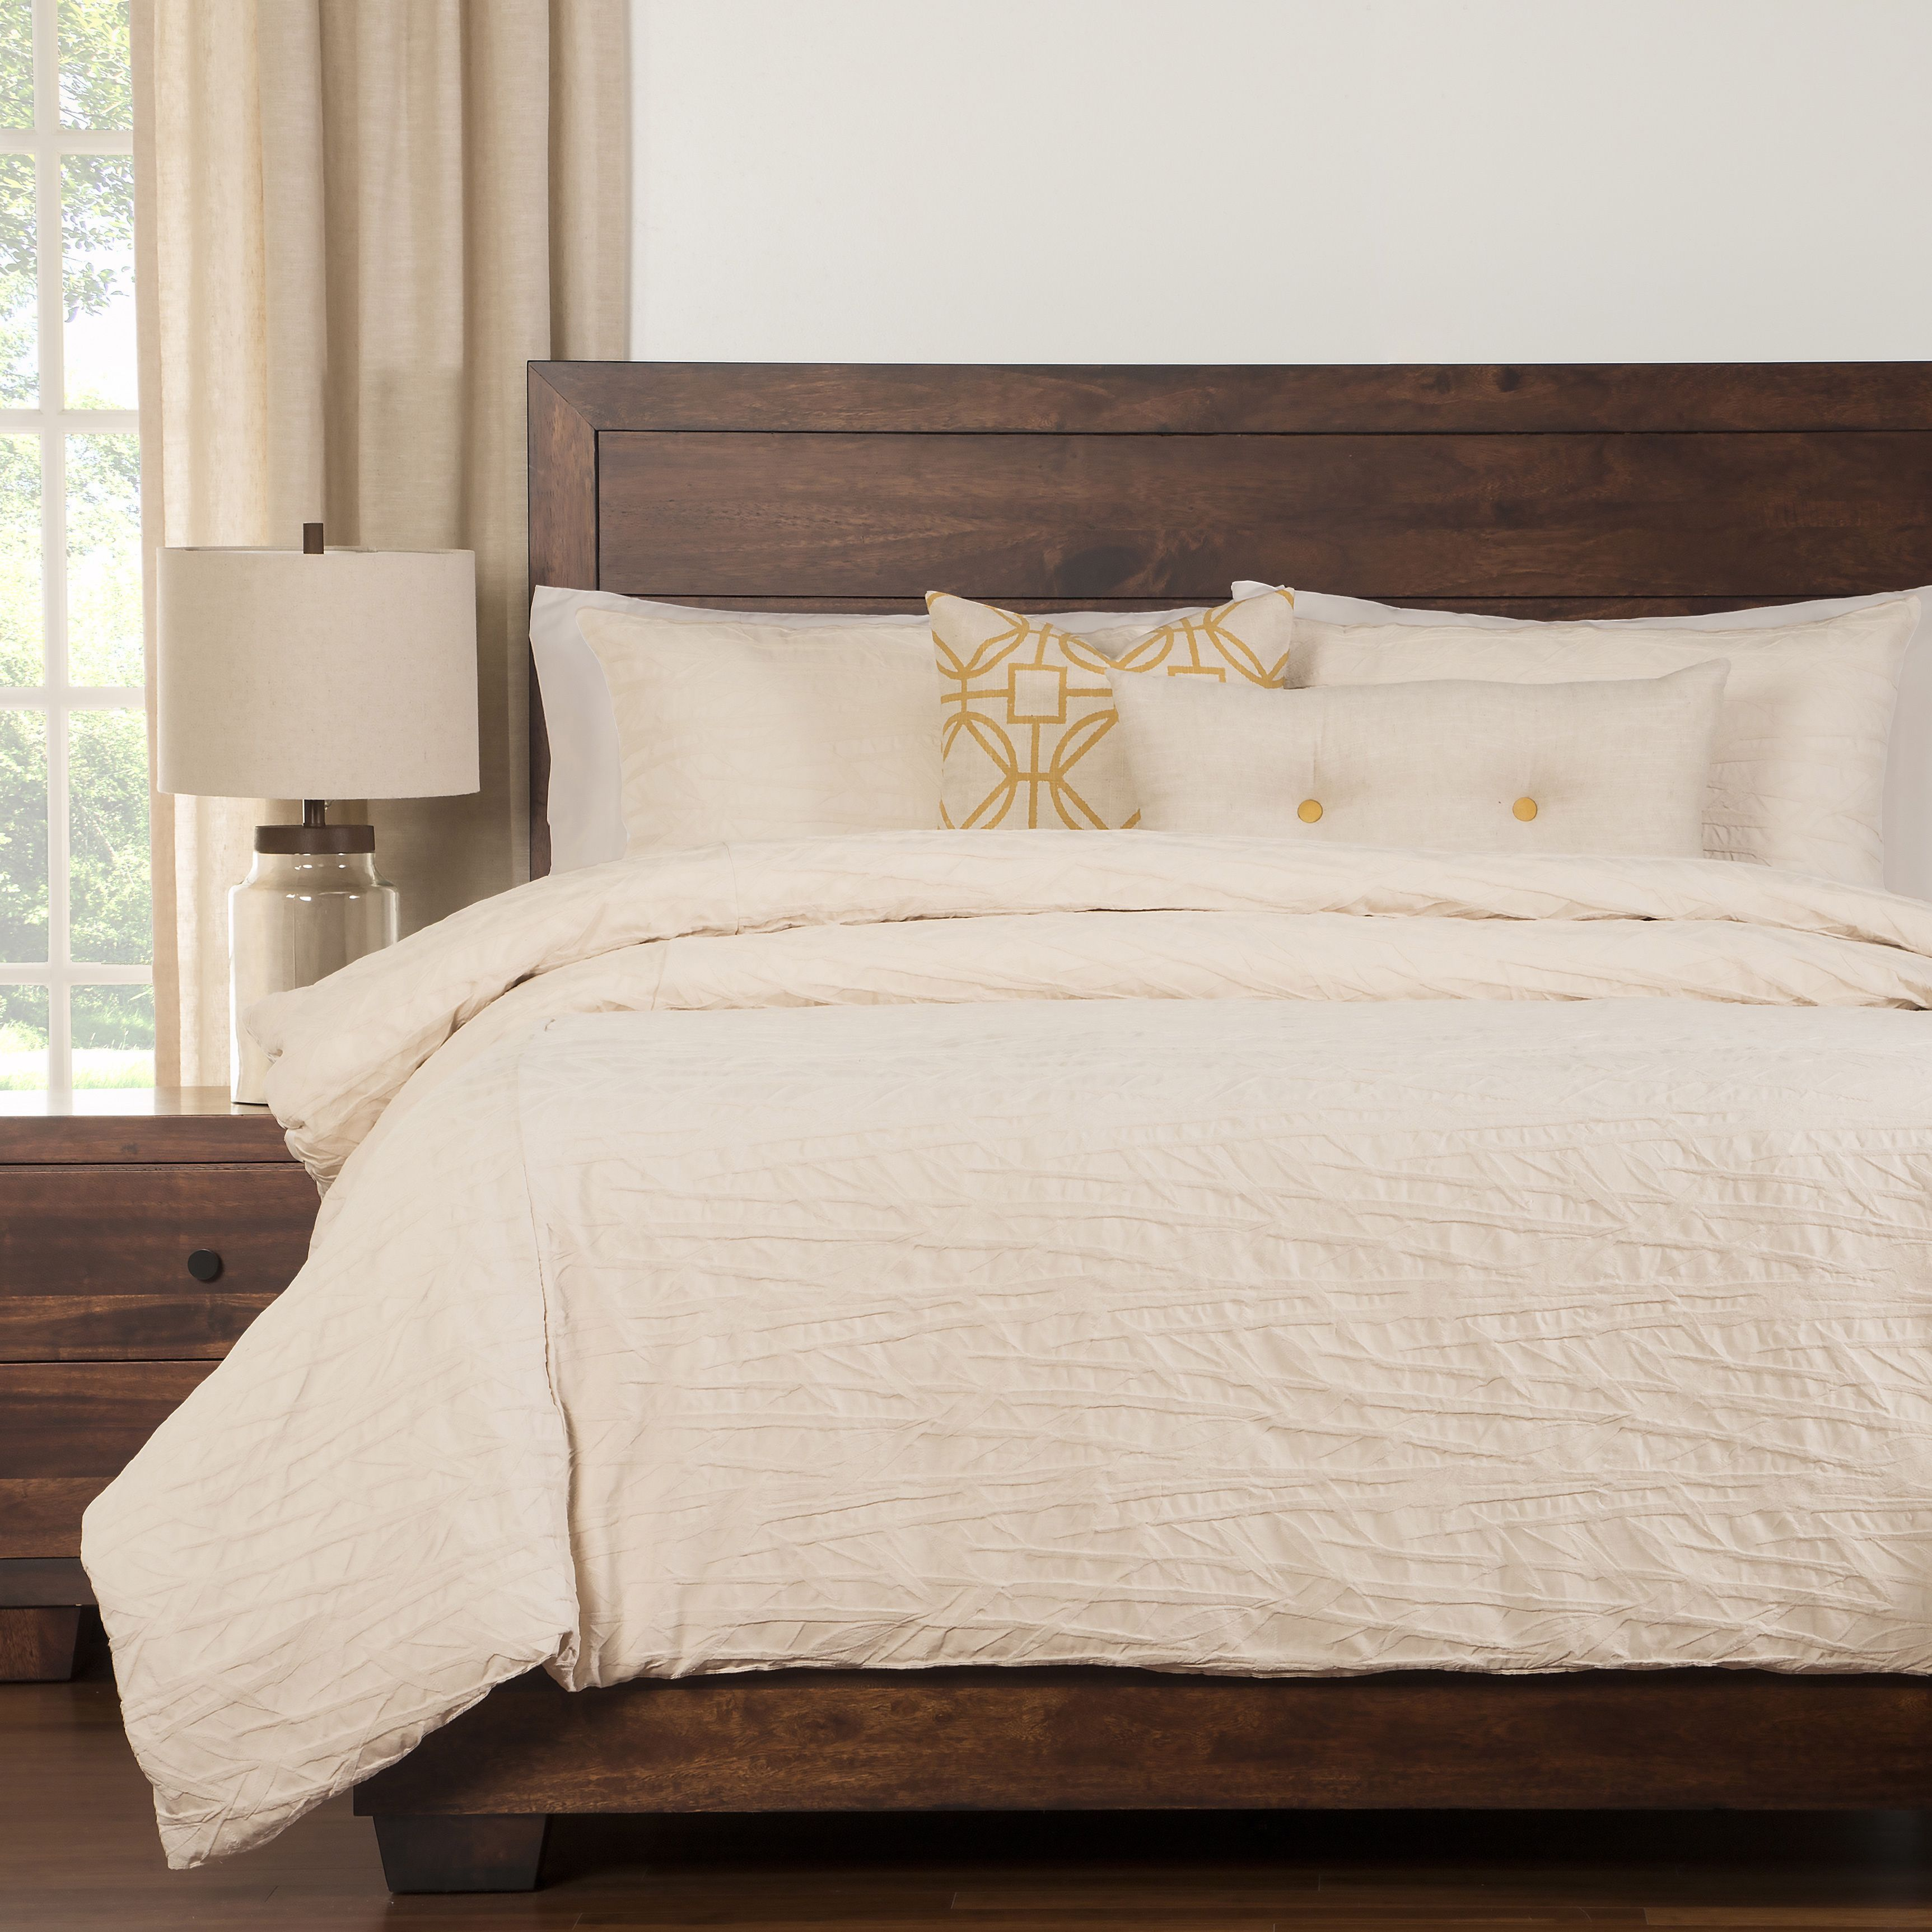 white creative beds navy bedspread matelasse set covers at size duvet attractive bedroom nice black alluring cover blue comforters and design your quilt remarkable california cal quilted ruffle queen king full taupe gray comforter ideas sets twin bedding for duvets target of turquoise